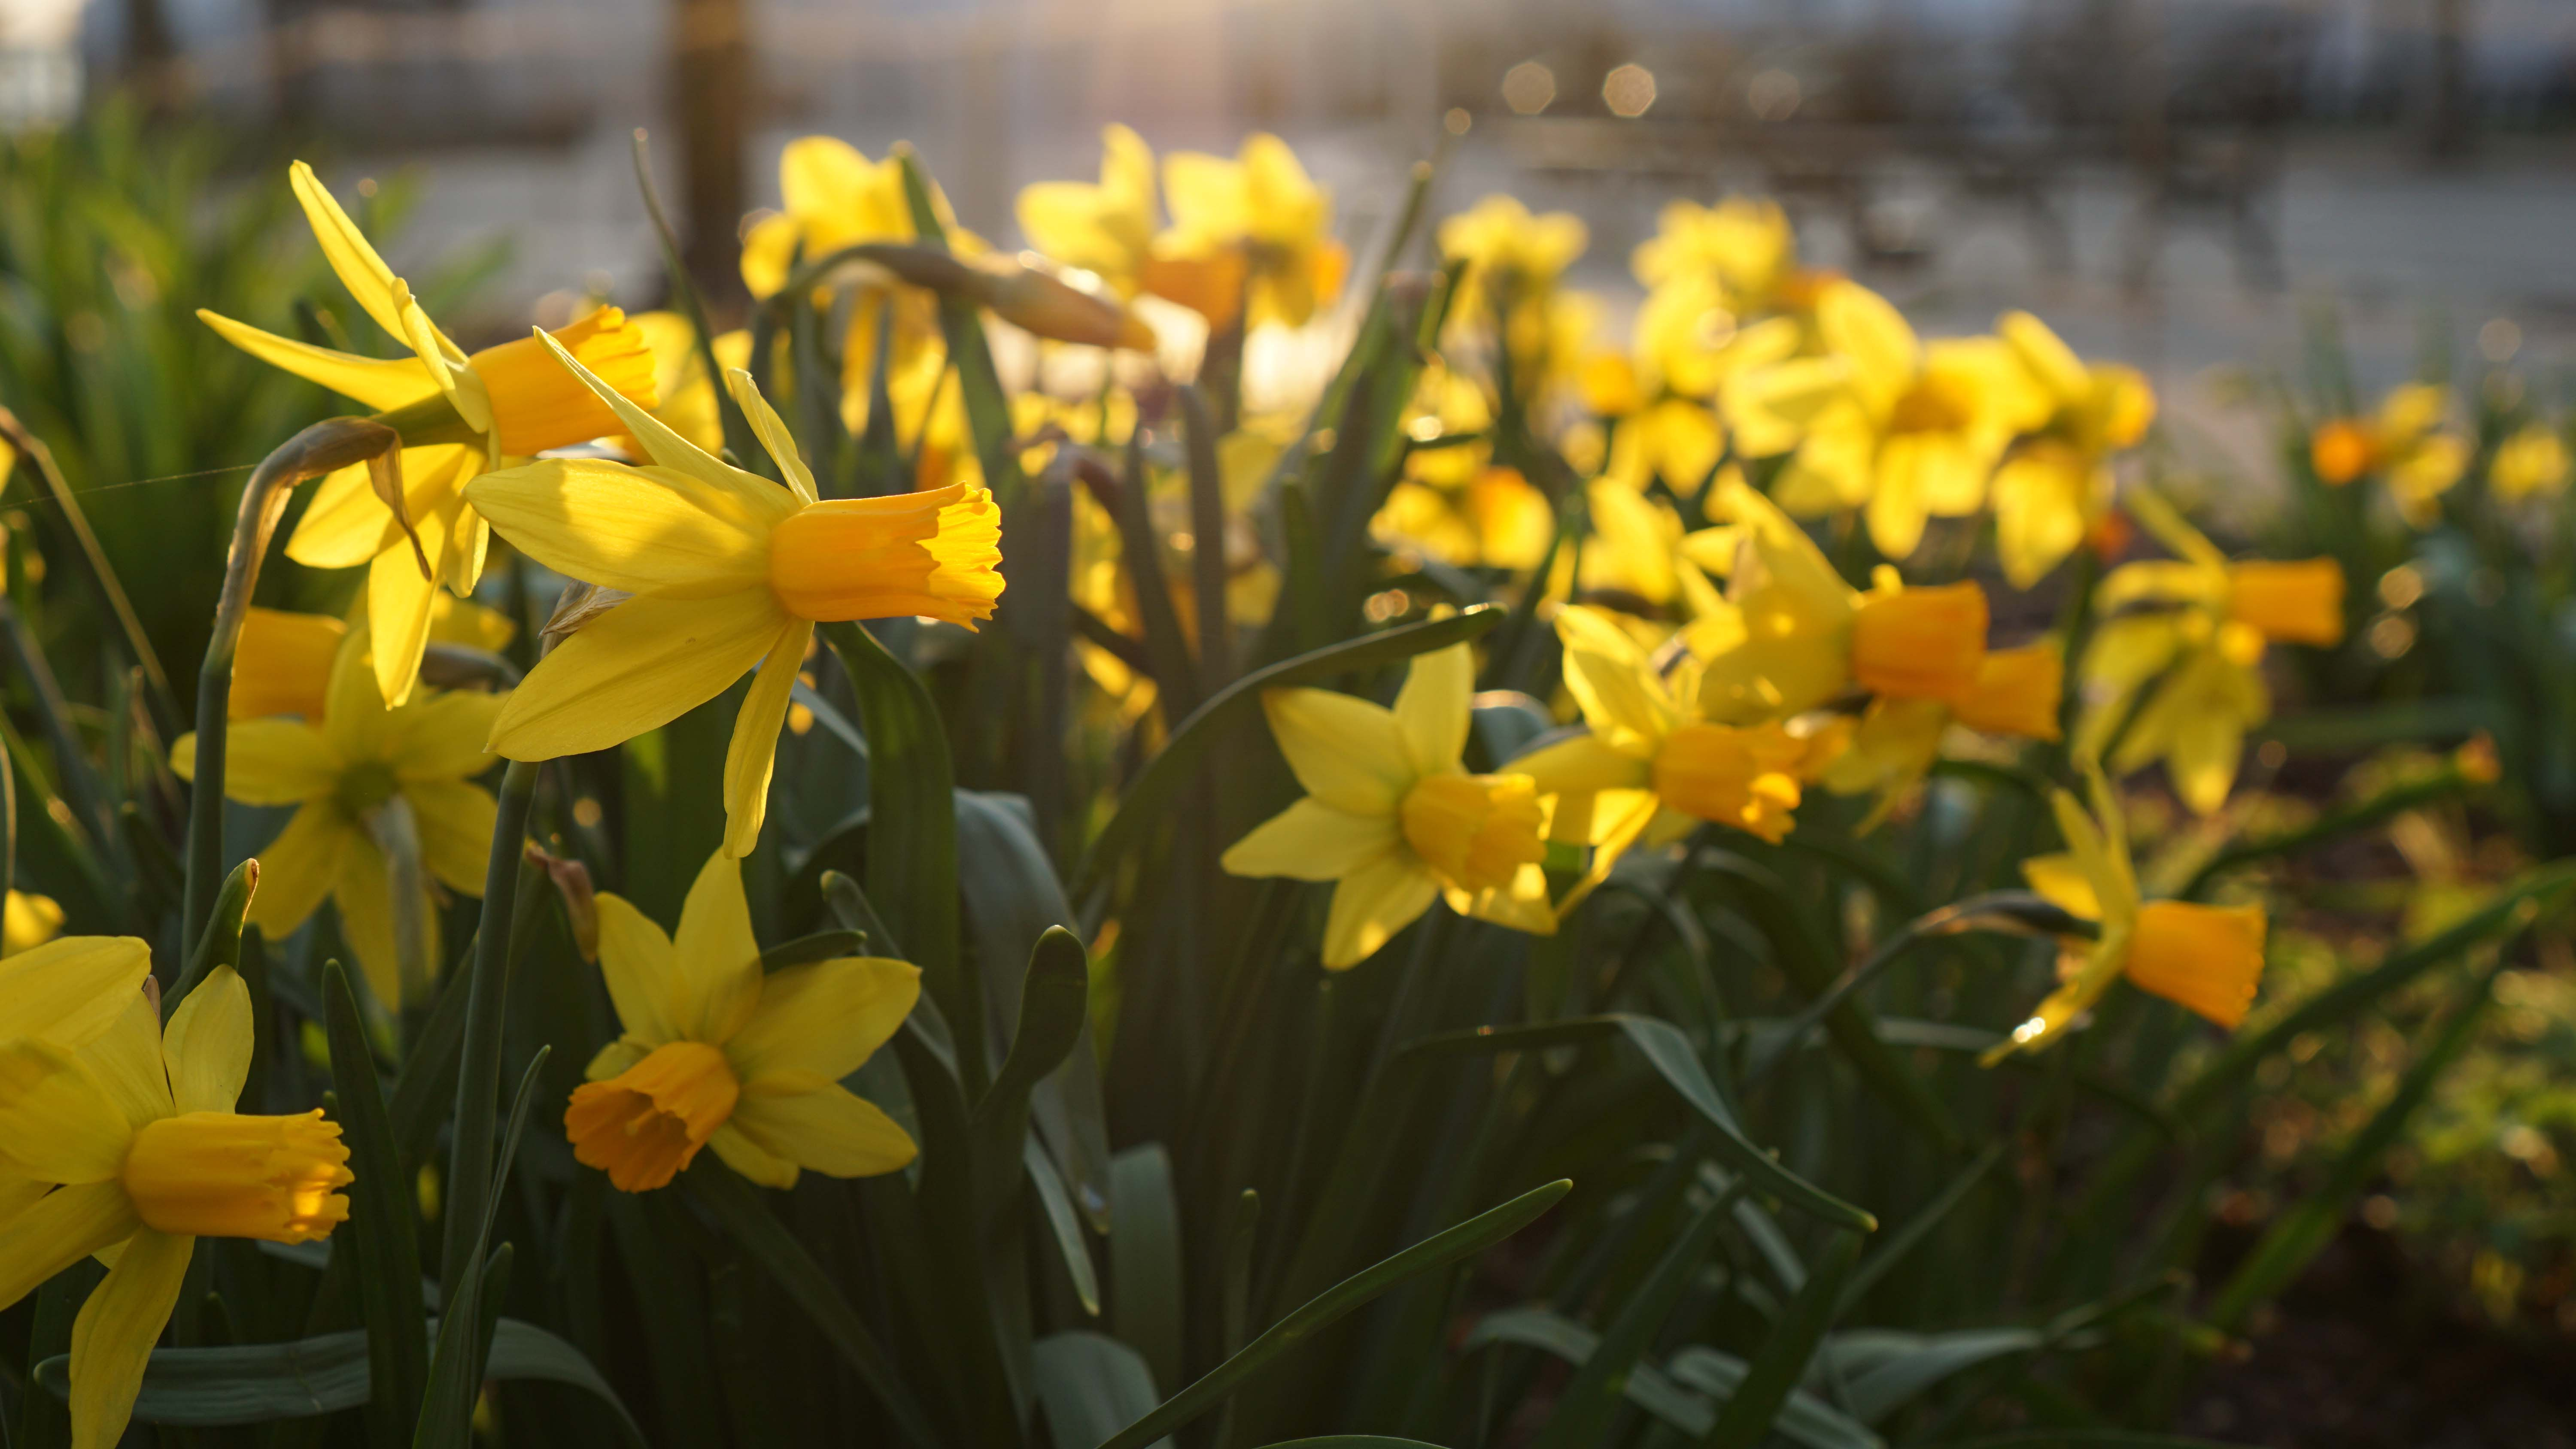 Battery Park Conservancy open daffodil